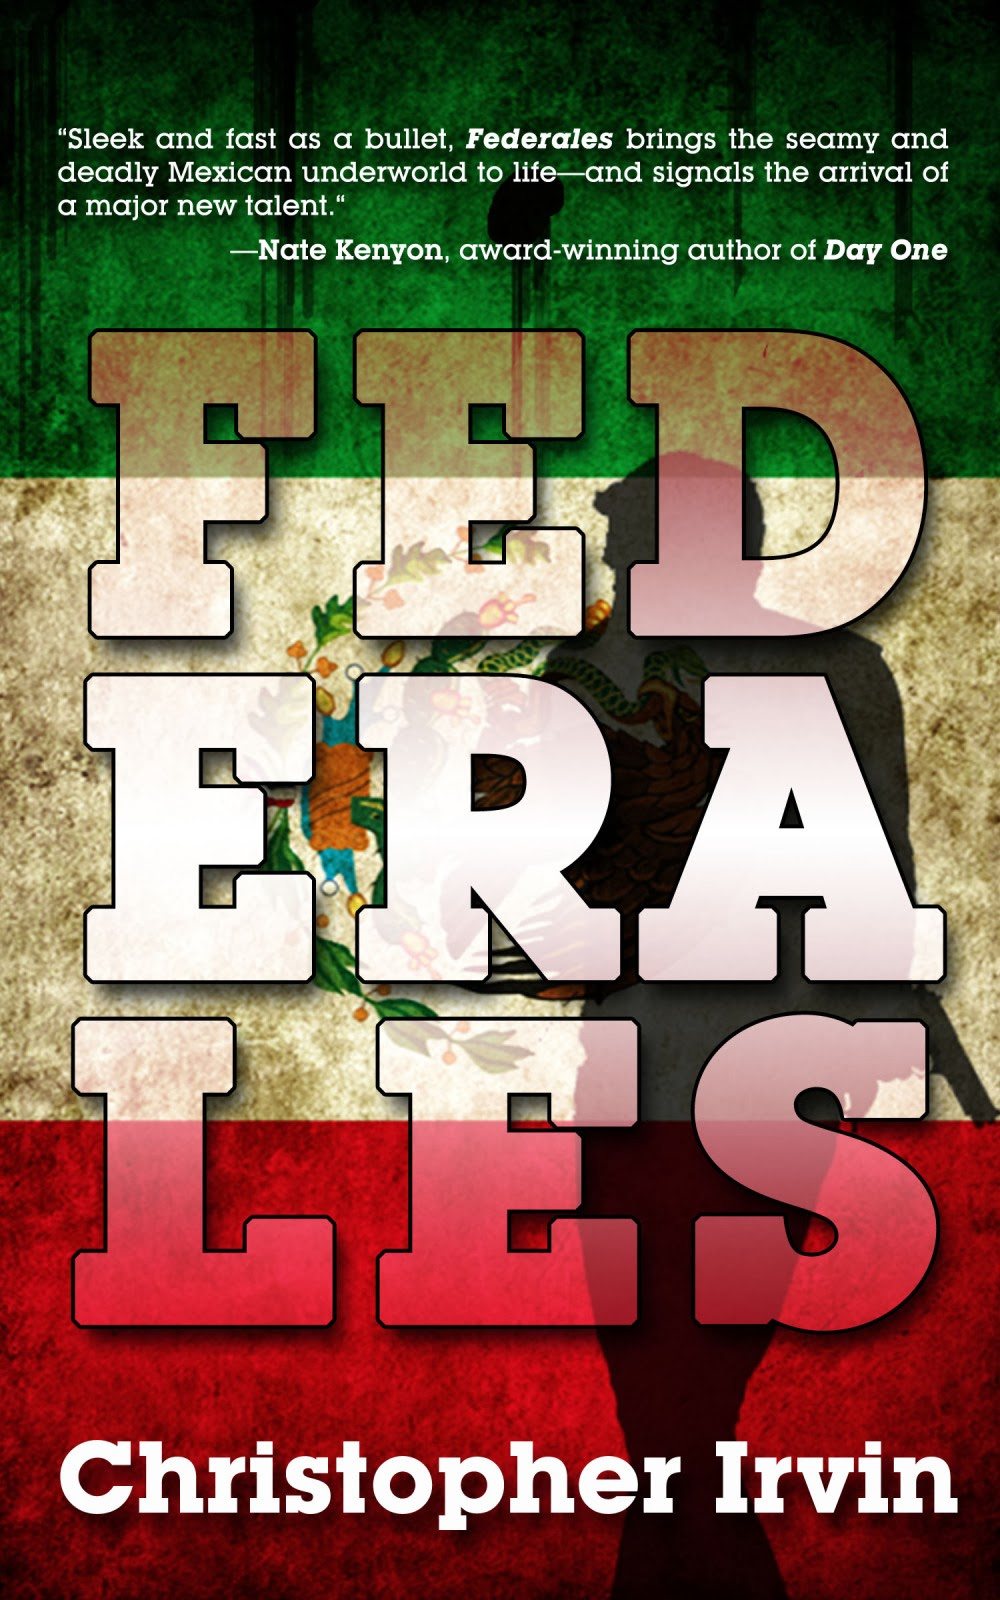 Chris Irvin: Five Things I Learned Writing Federales